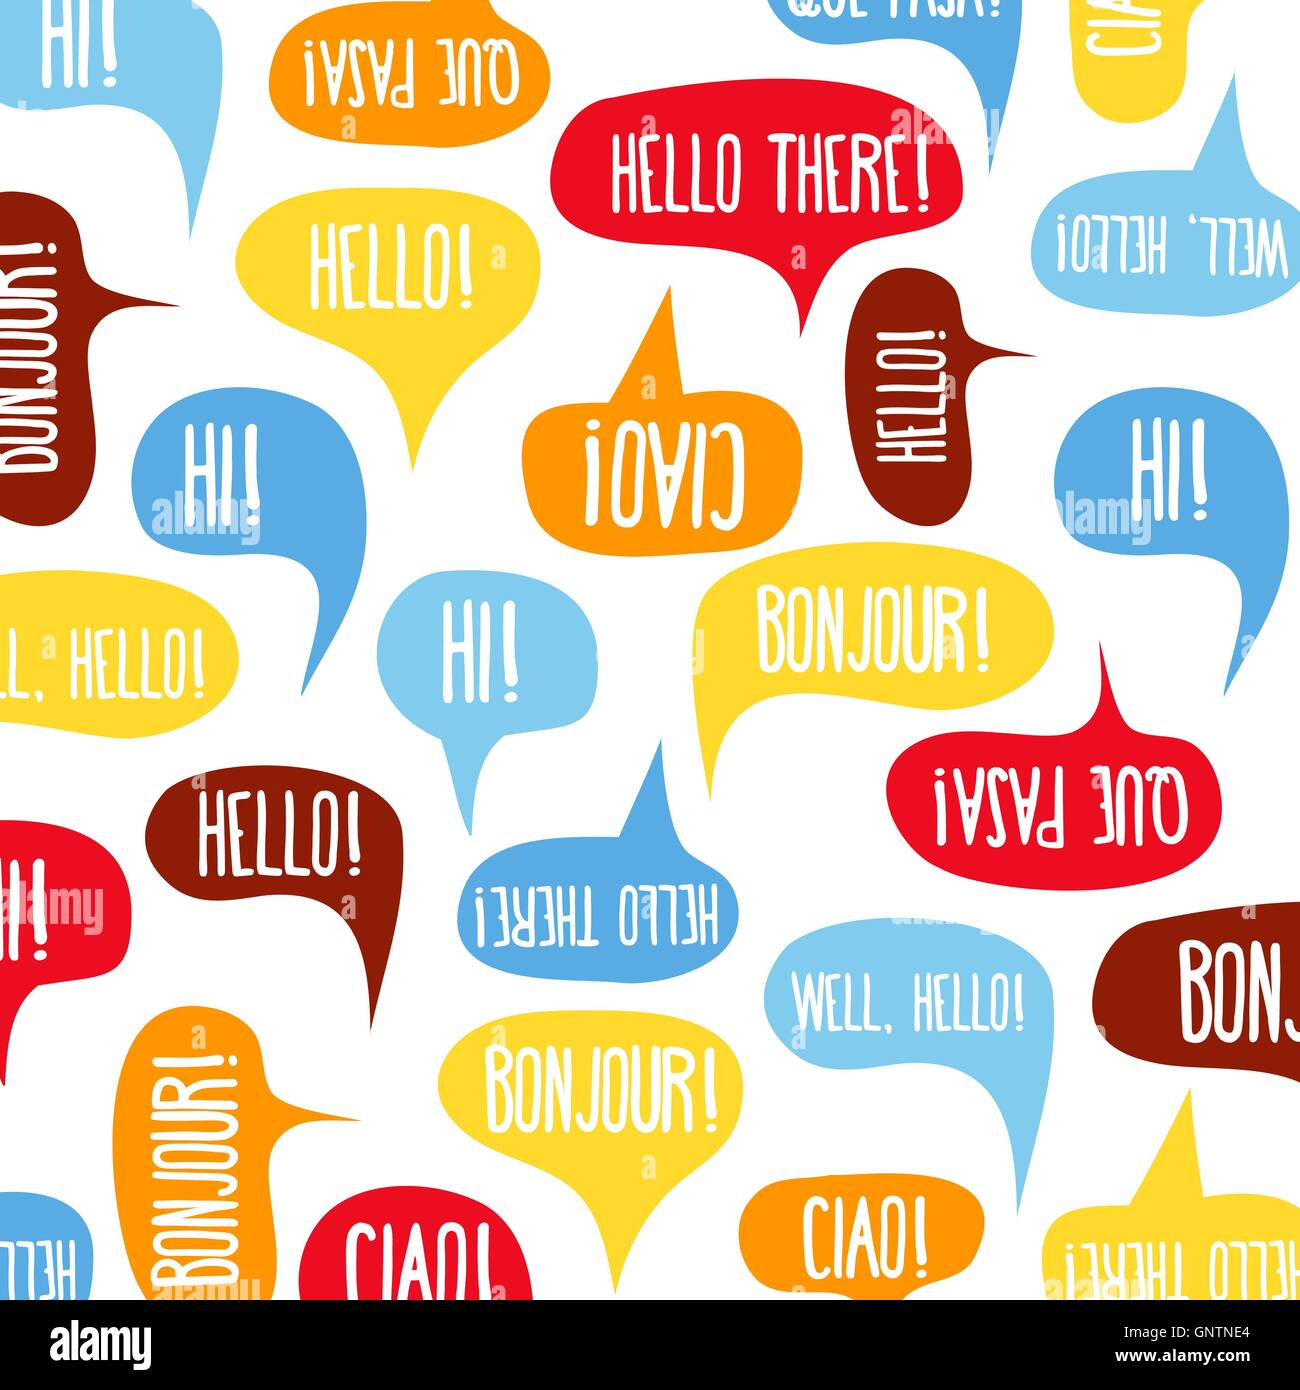 how to say hello in foreign languages